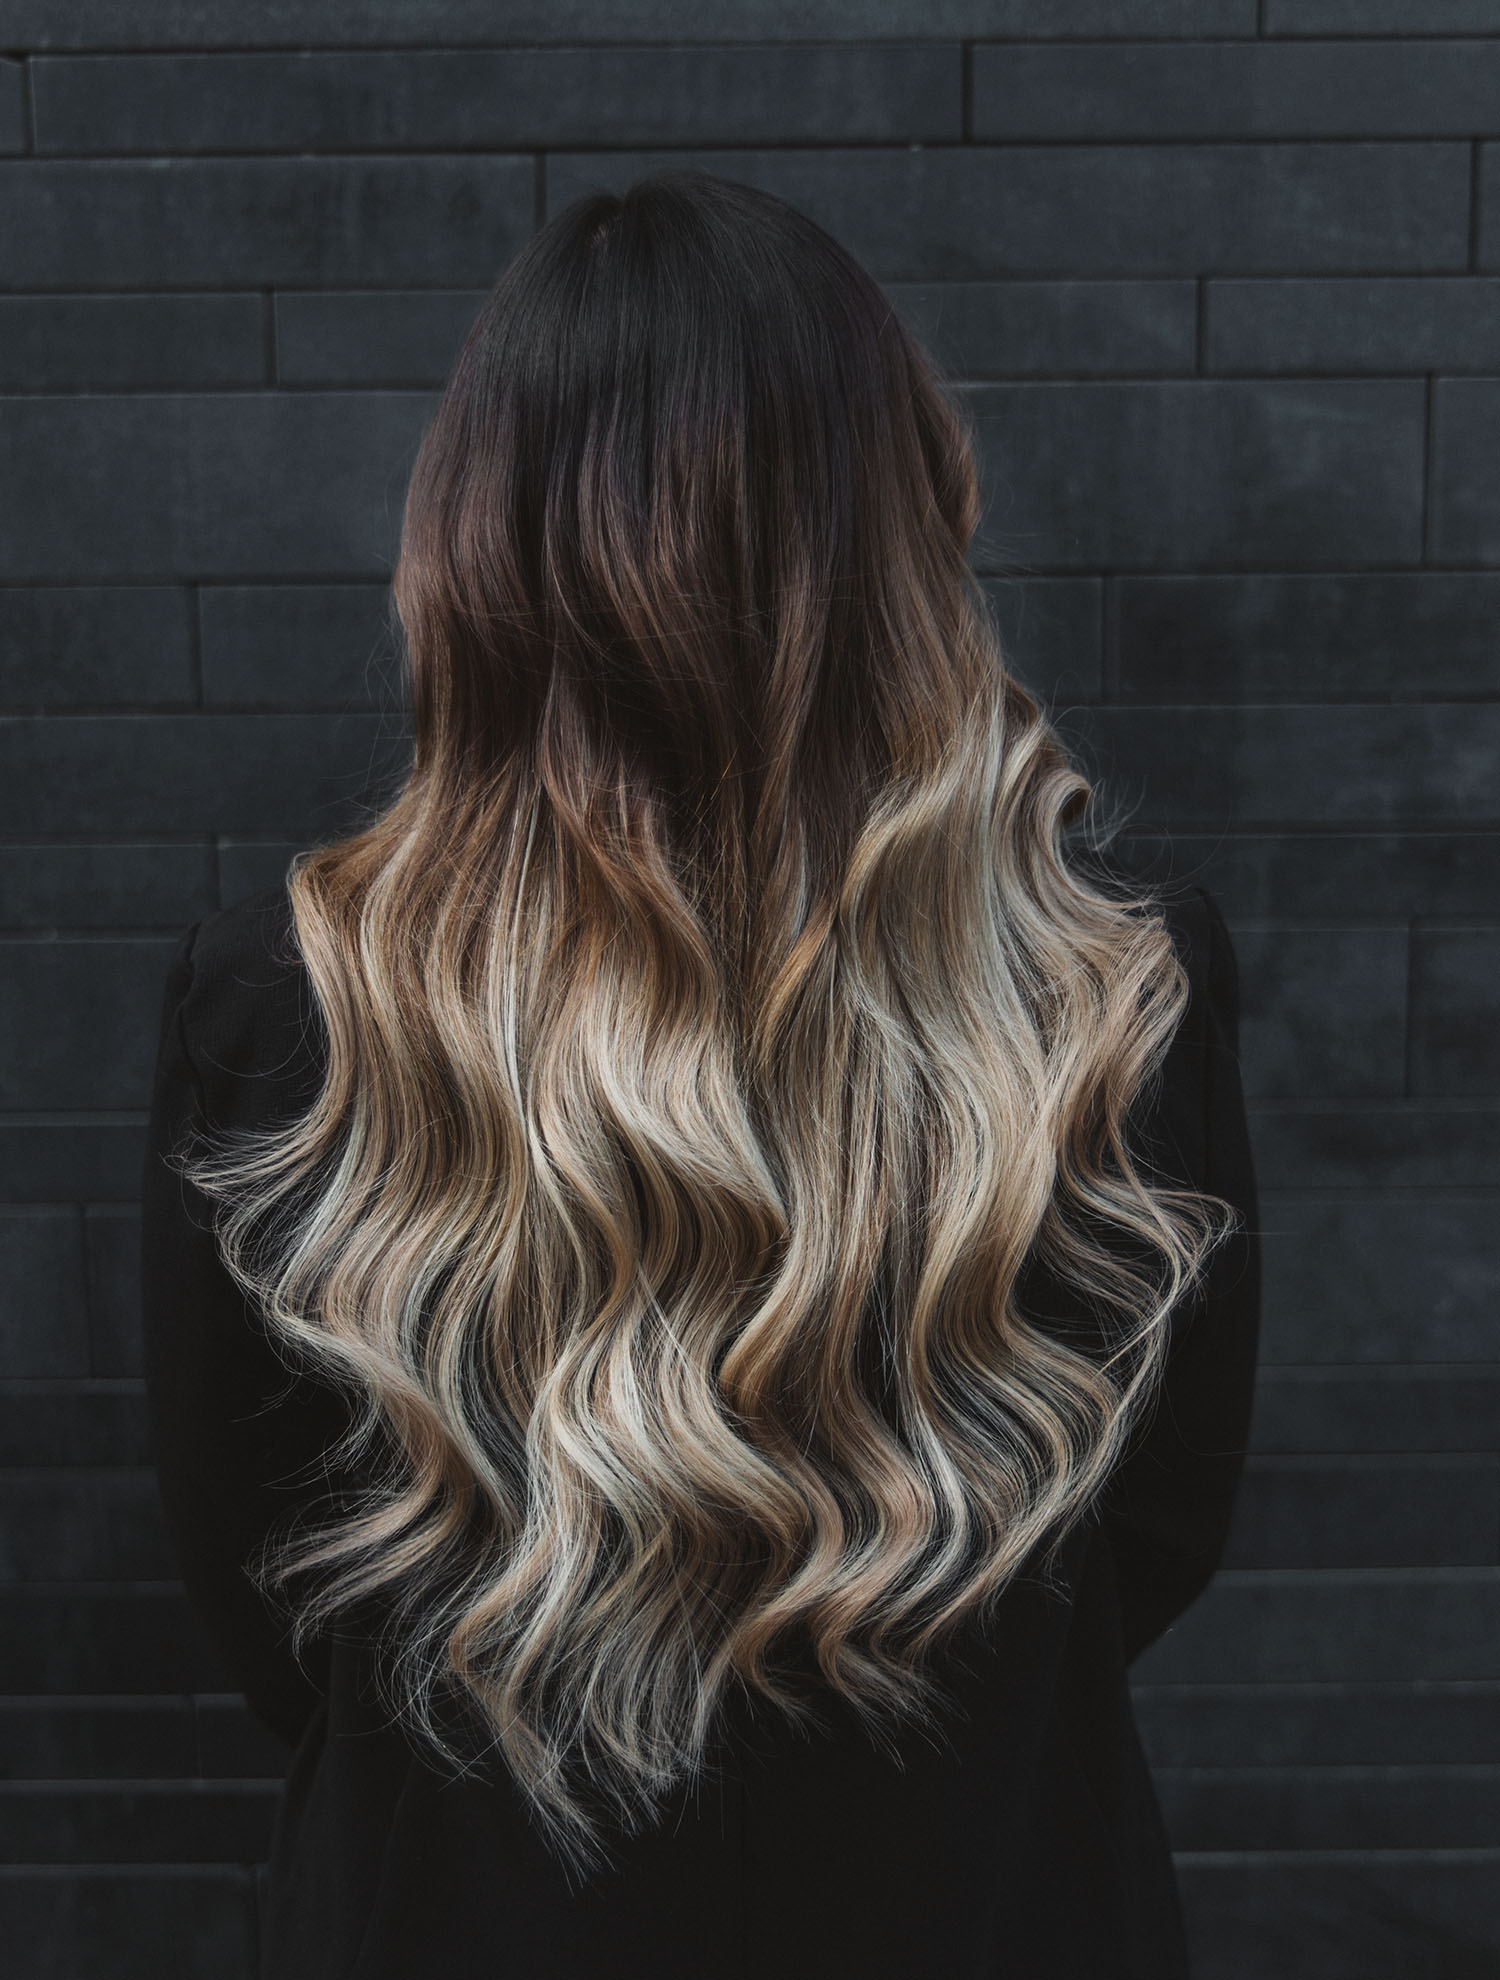 Balayage and beach waves - After Rapunzel of Sweden's Hair Extensions